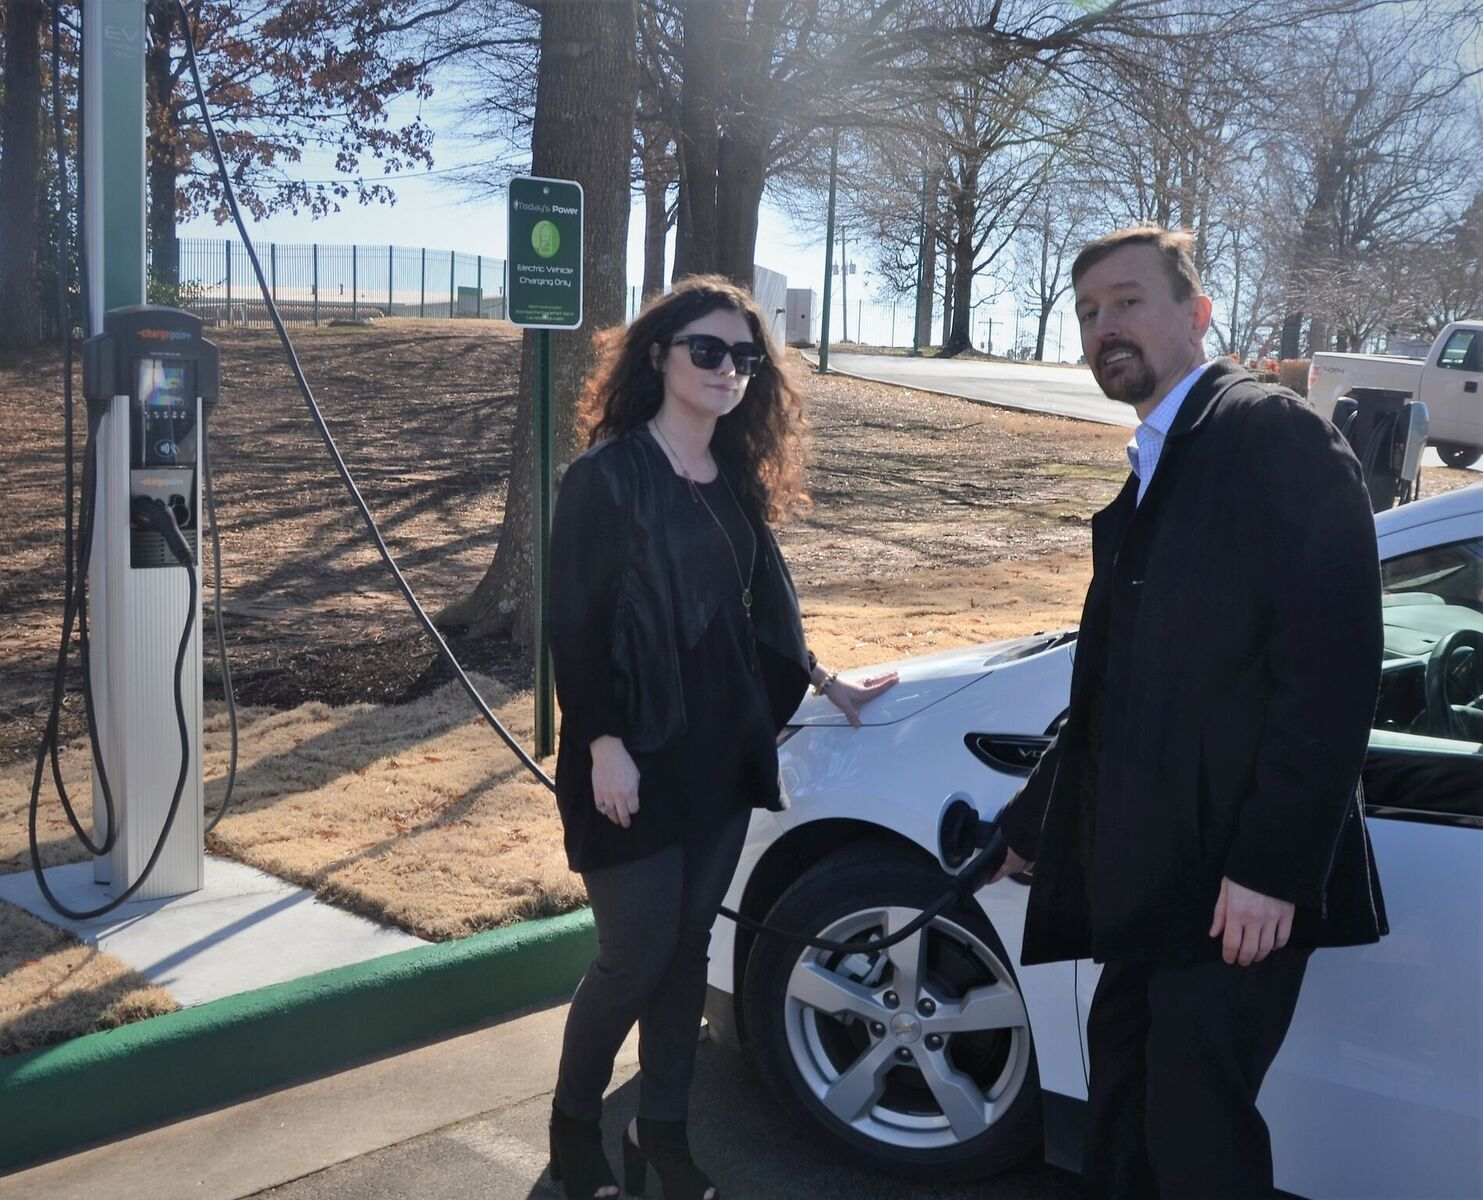 Level 2 Public & WorkPlace Charging - The Electric Cooperatives of Arkansas - Little Rock, AR